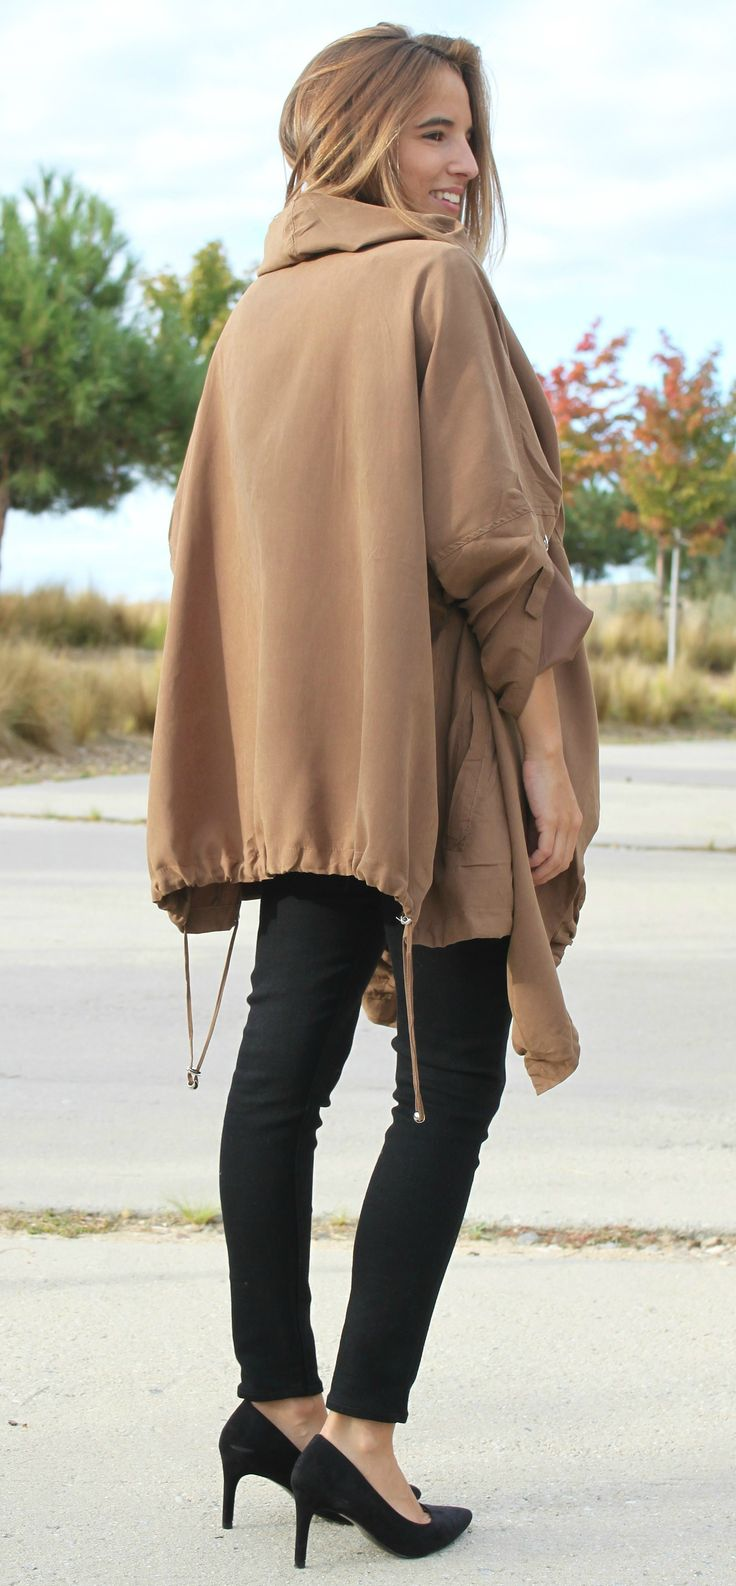 Capa oversize blogger La Reina del Low Cost stilettos blanket total black style total look outfit